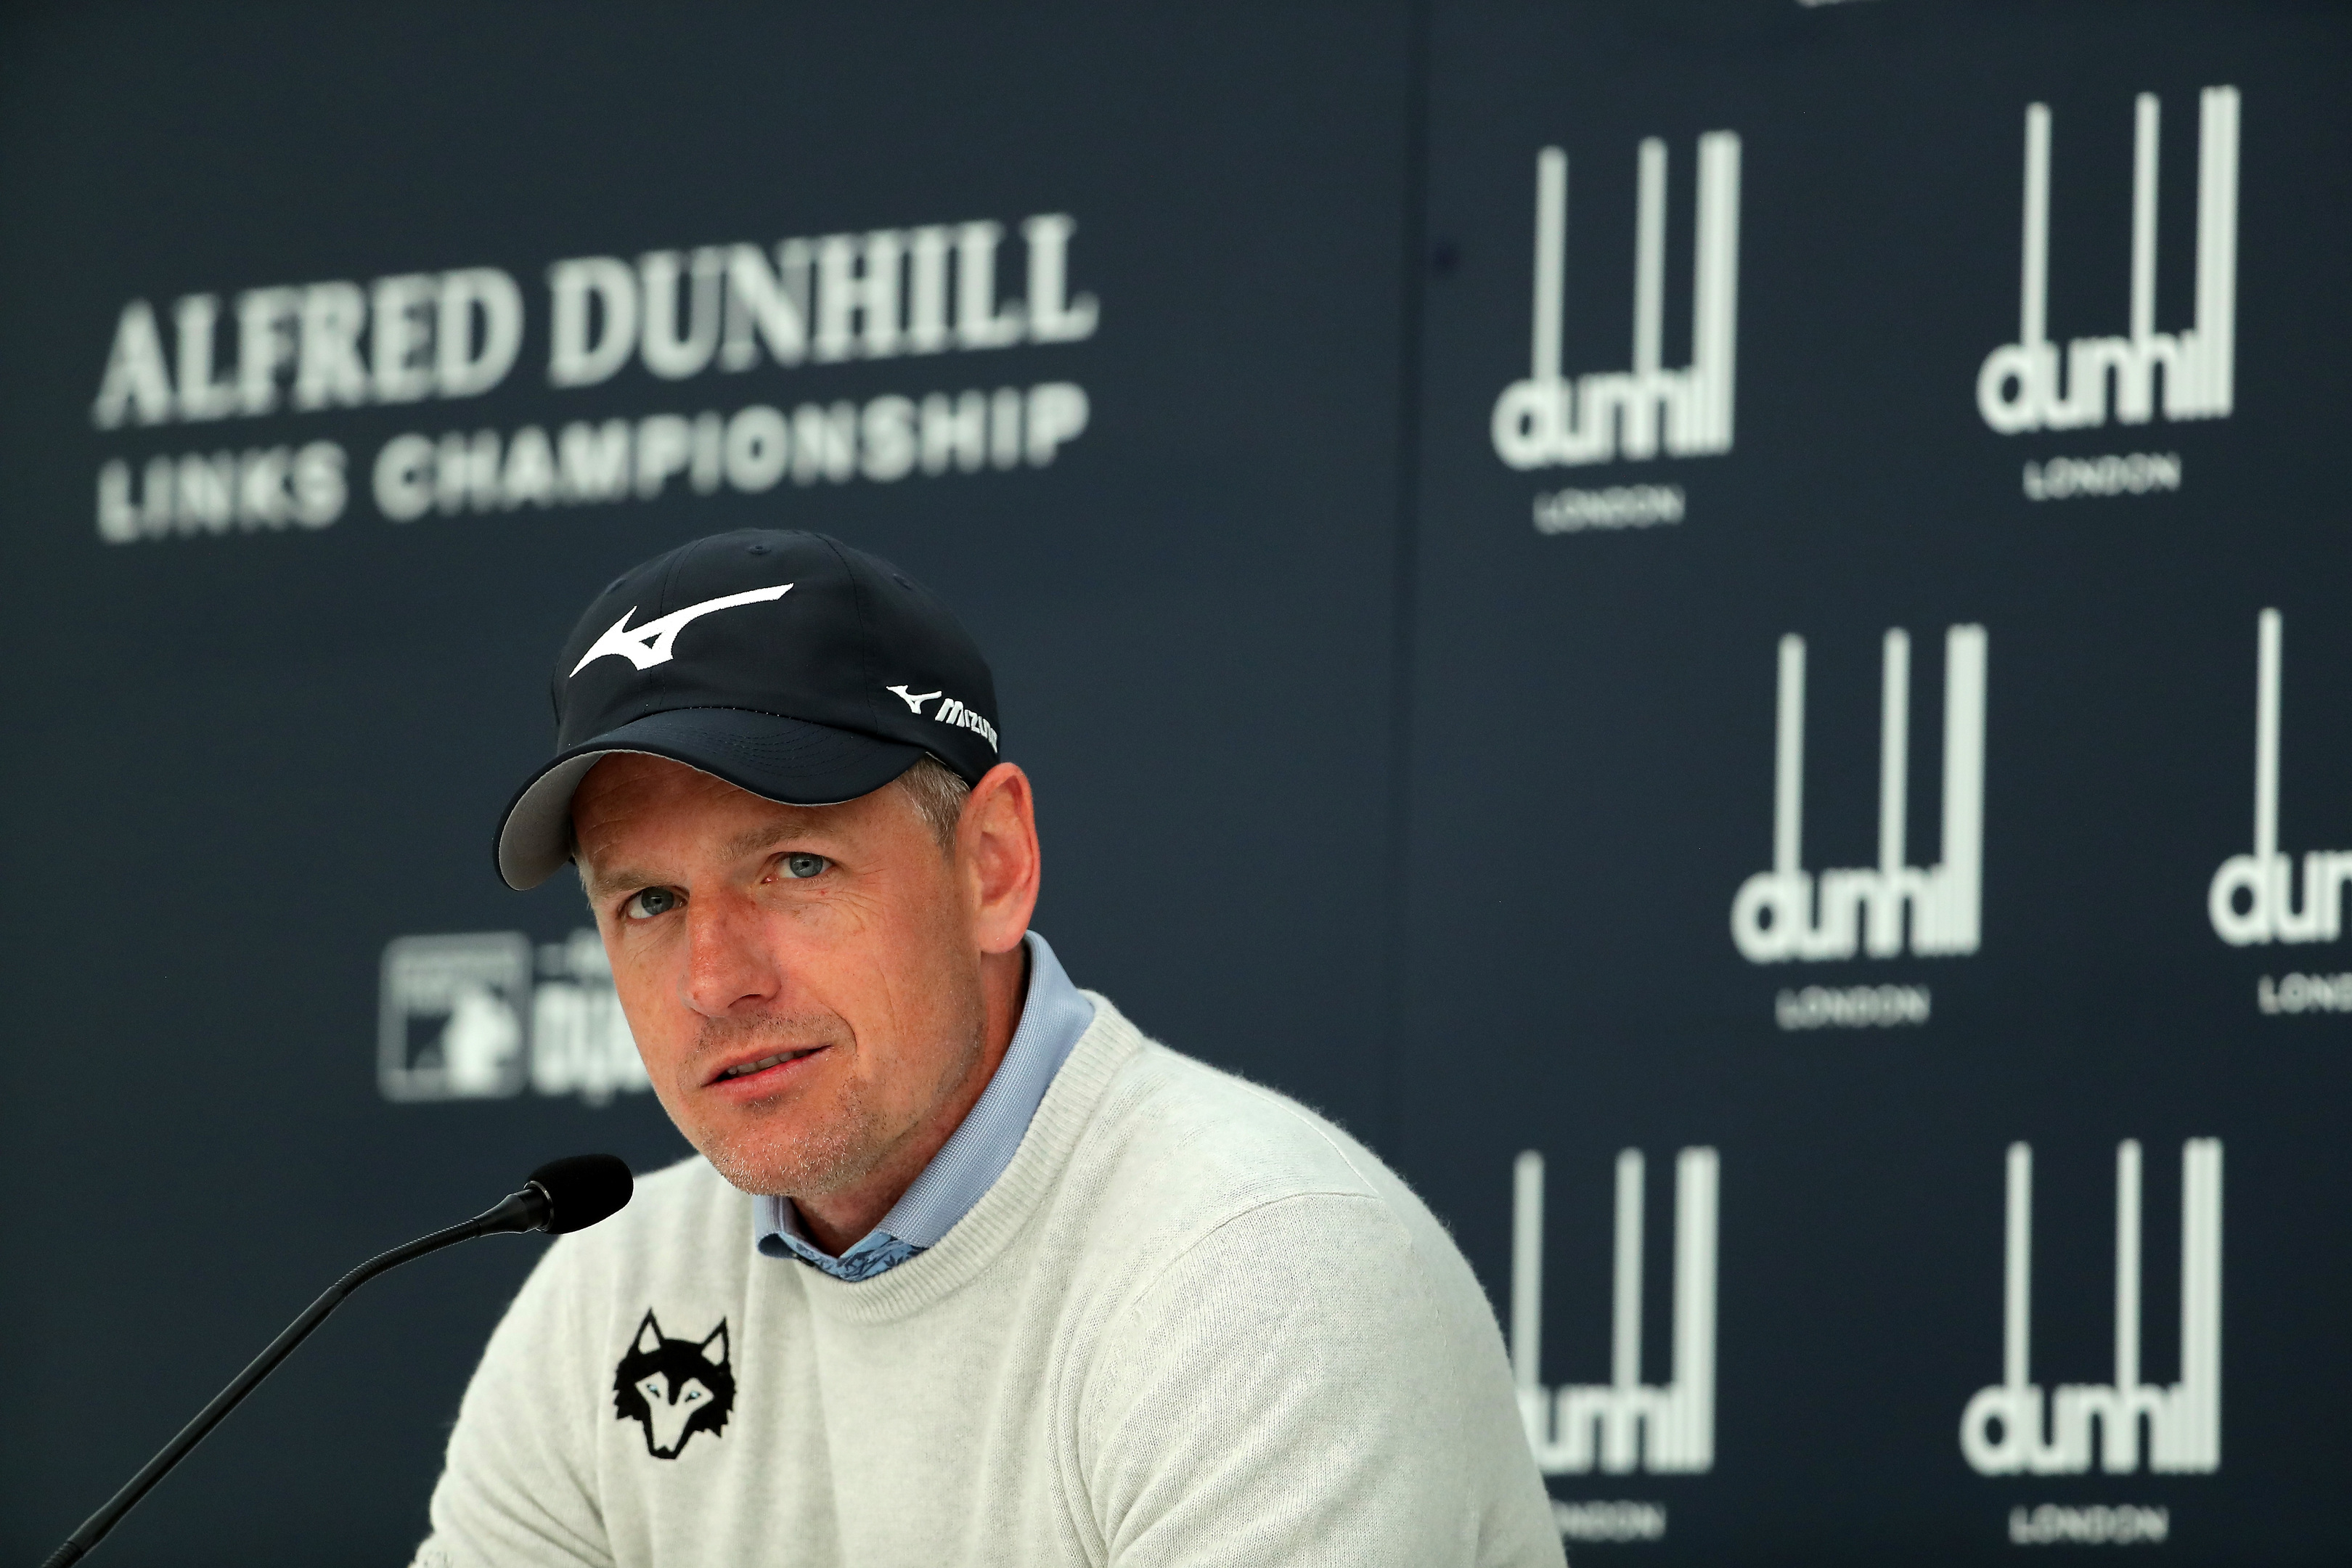 Luke Donald has backed calls for Padraig Harrington to be Europe's next Ryder Cup captain.